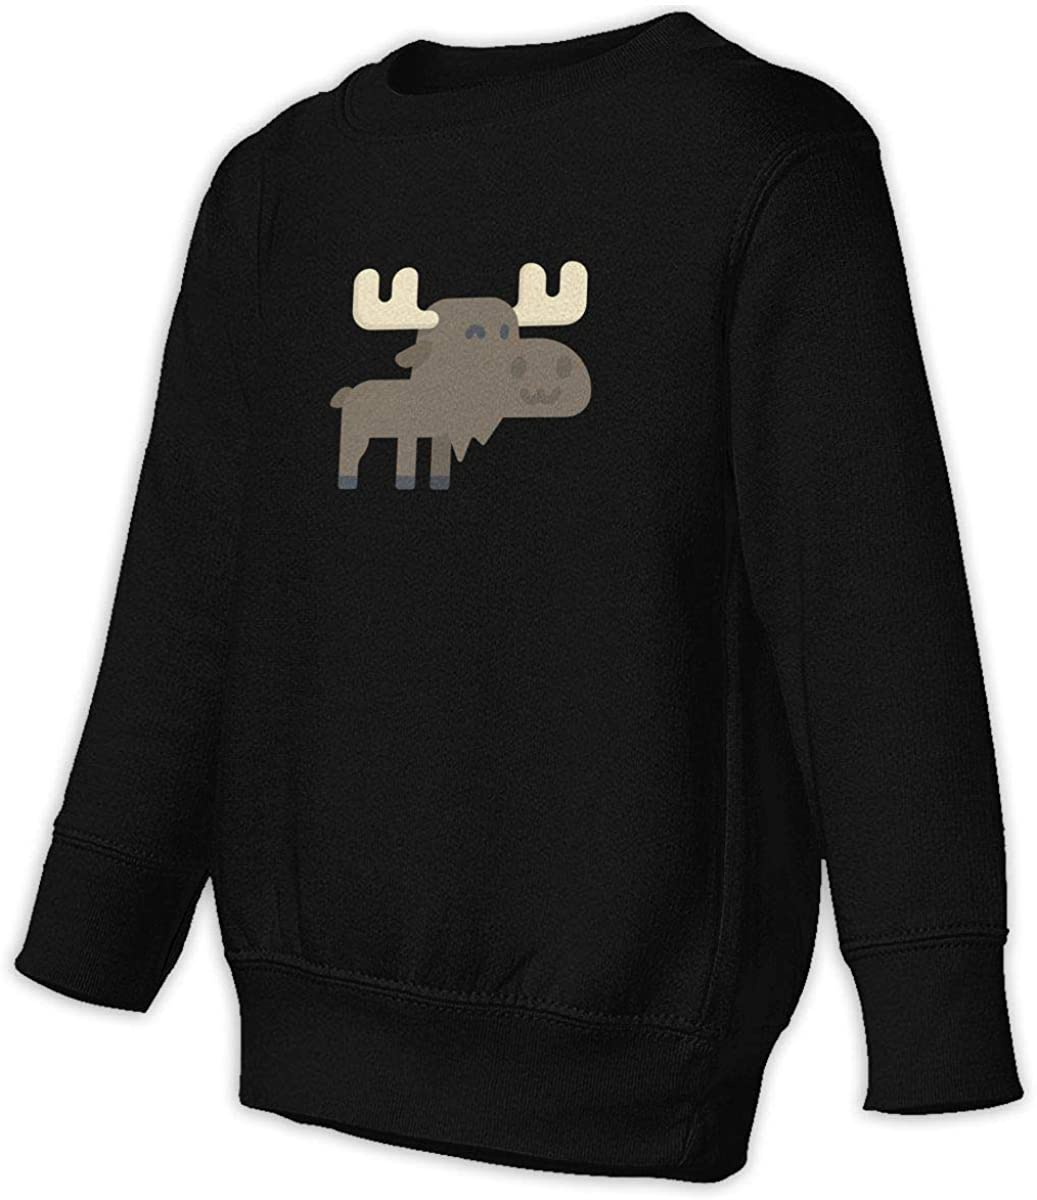 Fleece Pull Over Sweatshirt for Boys Girls Kids Youth Moose Unisex Toddler Hoodies